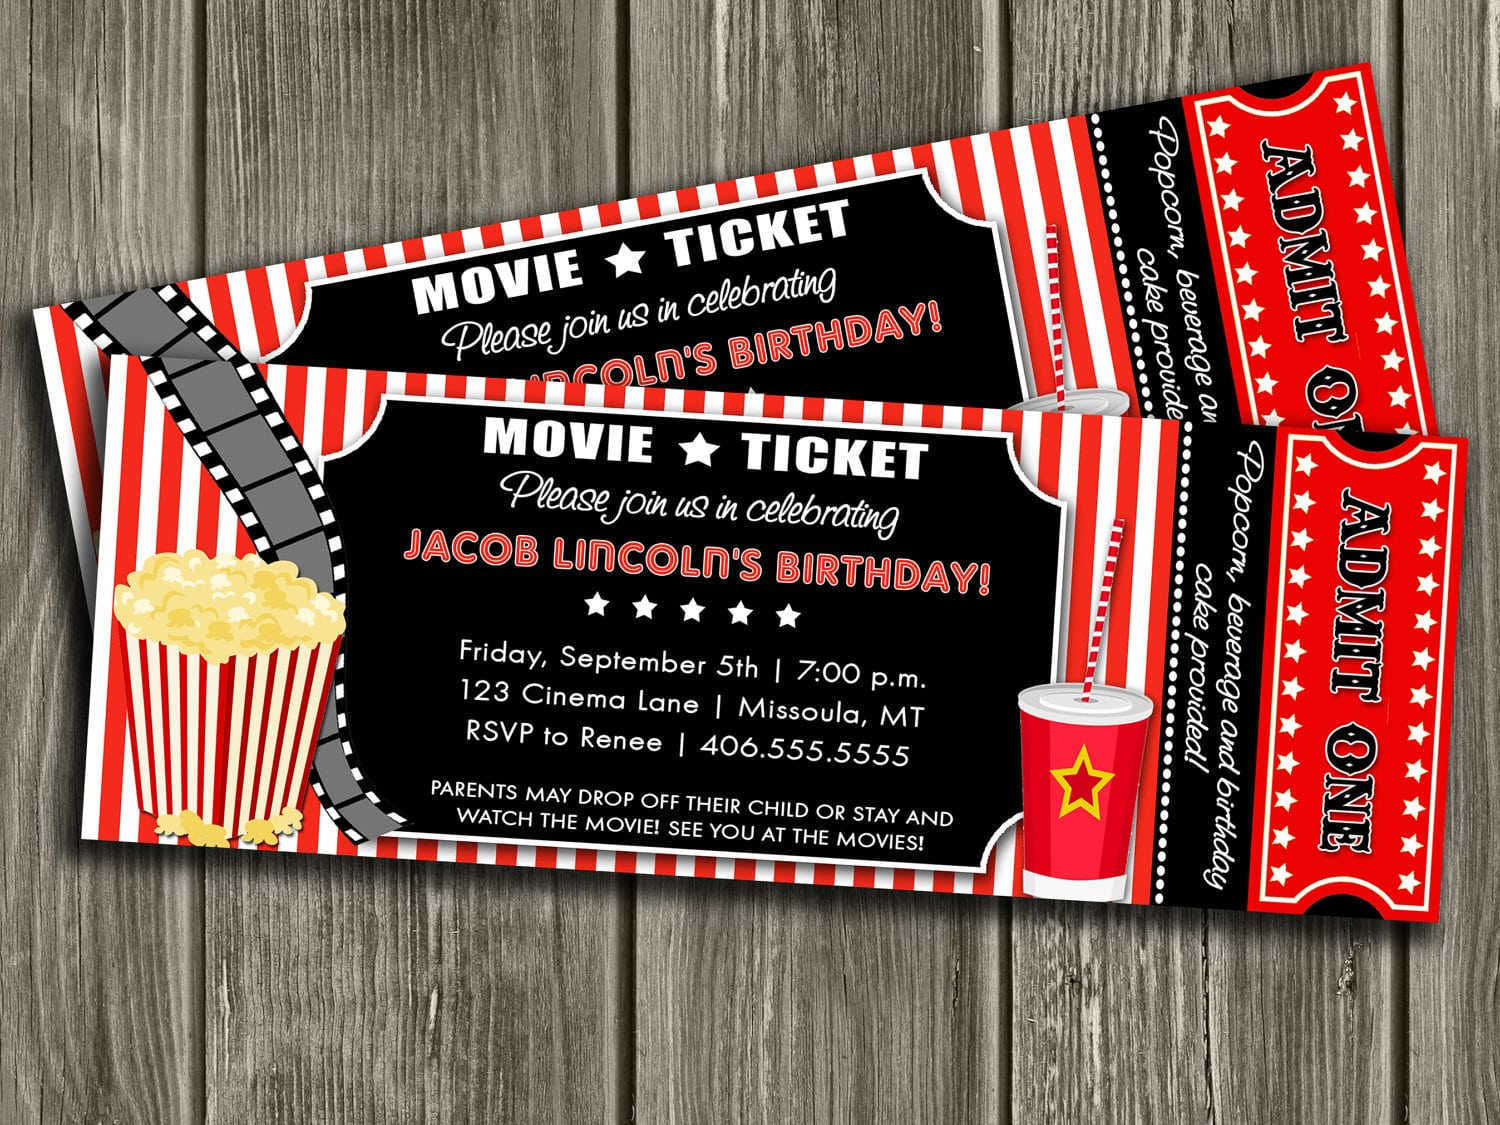 Movie Ticket Party Invitation Template - Mickey Mouse Invitations ...